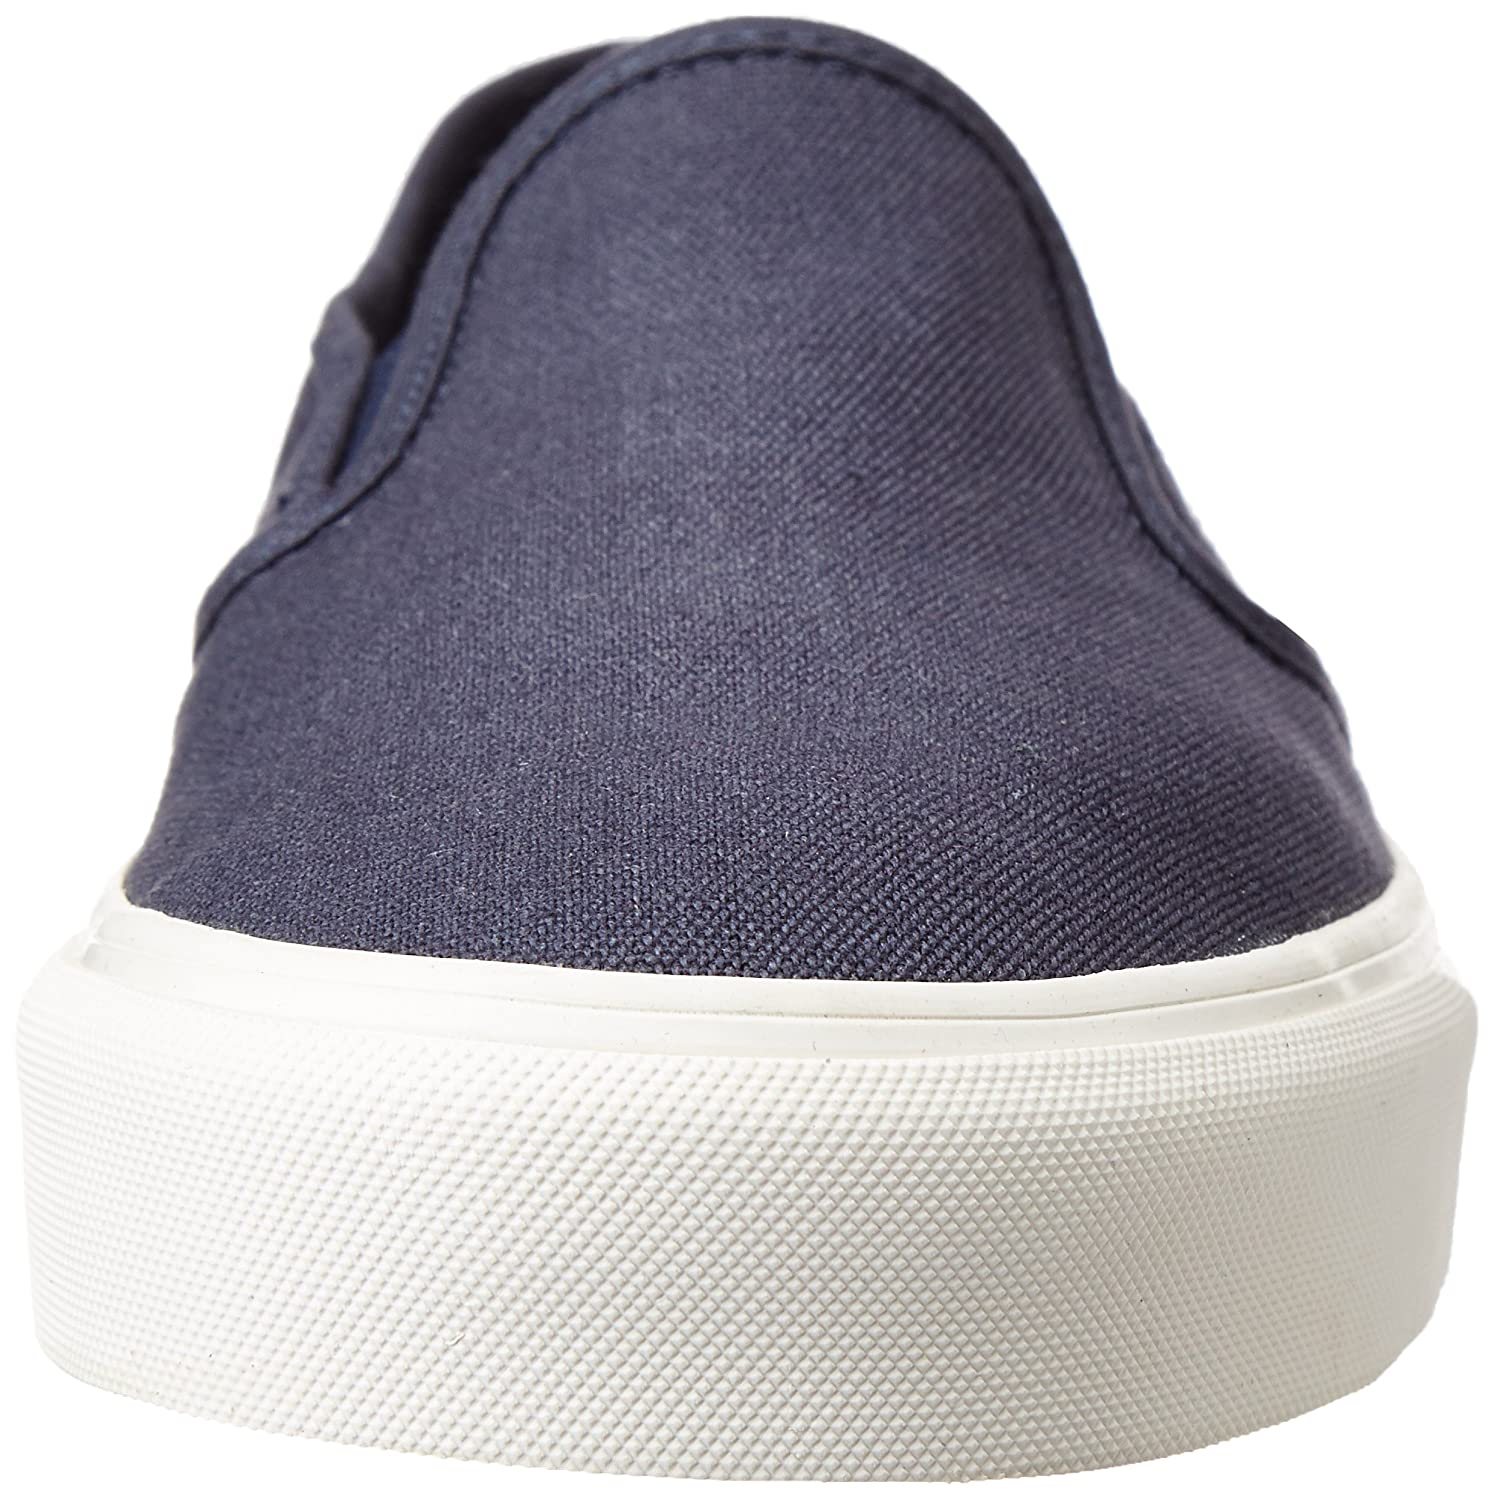 Vans Men s Slip-On Sf Parisian Night Loafers and Moccasins - 7 UK India  (40.5 EU)  Buy Online at Low Prices in India - Amazon.in 632179730